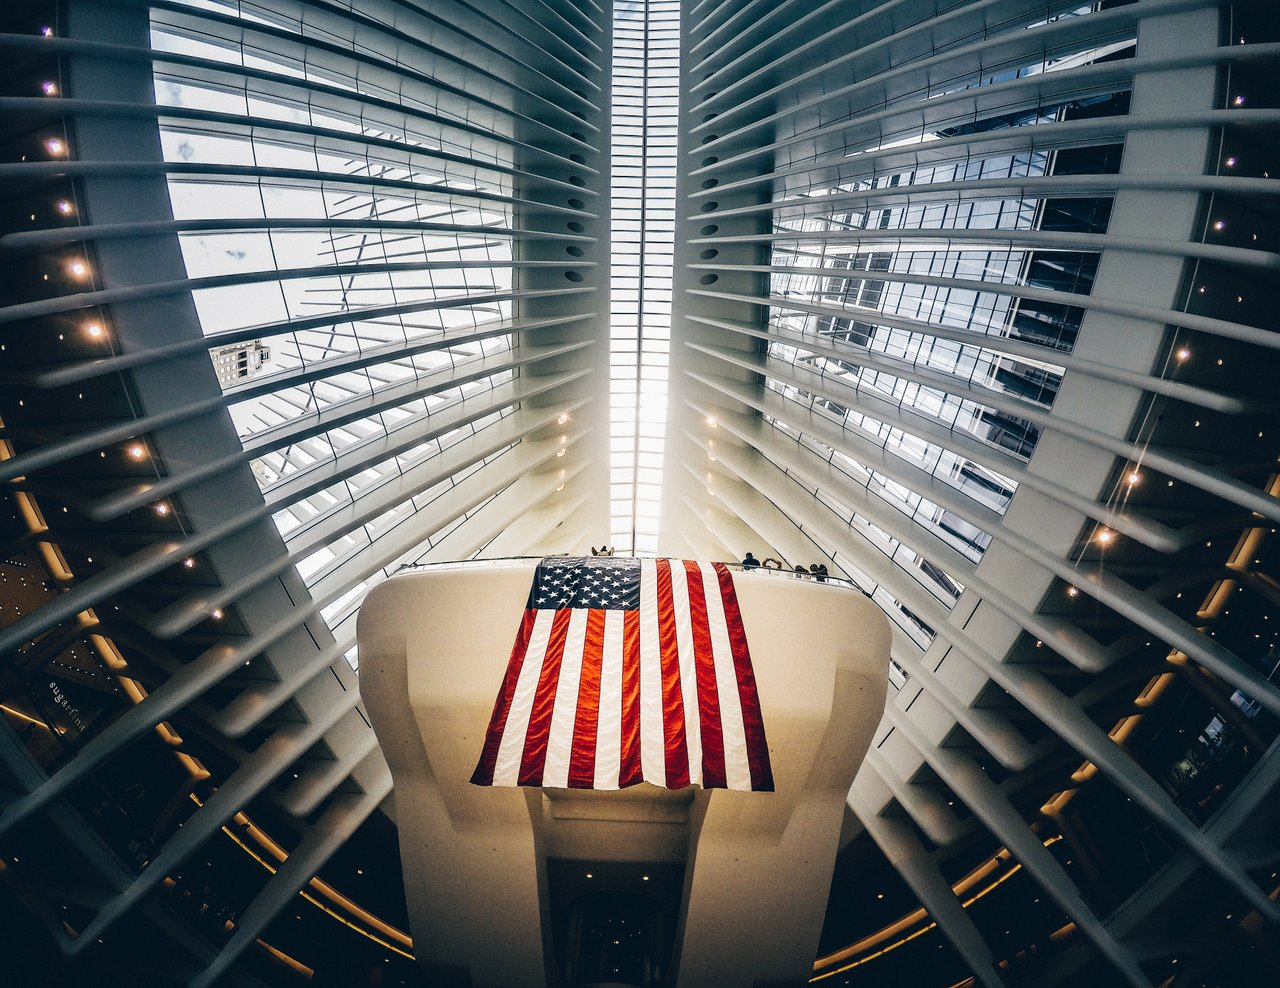 American flag hanging from building interior